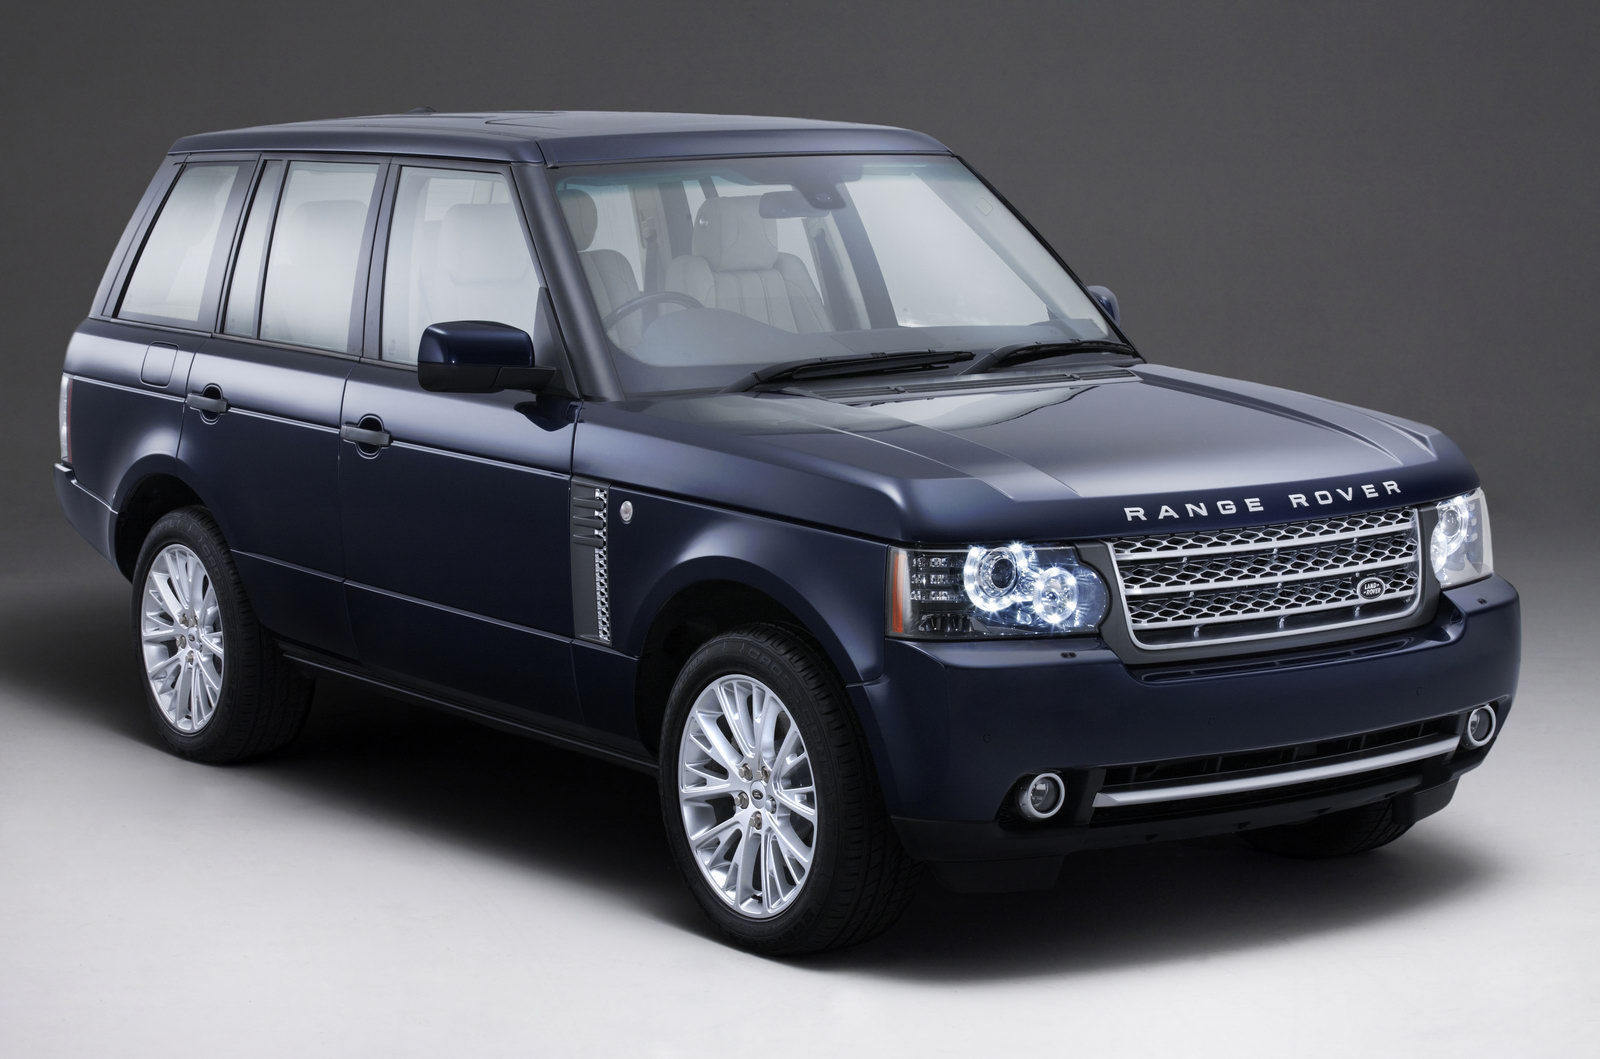 locations de vehicule voitures range rover. Black Bedroom Furniture Sets. Home Design Ideas